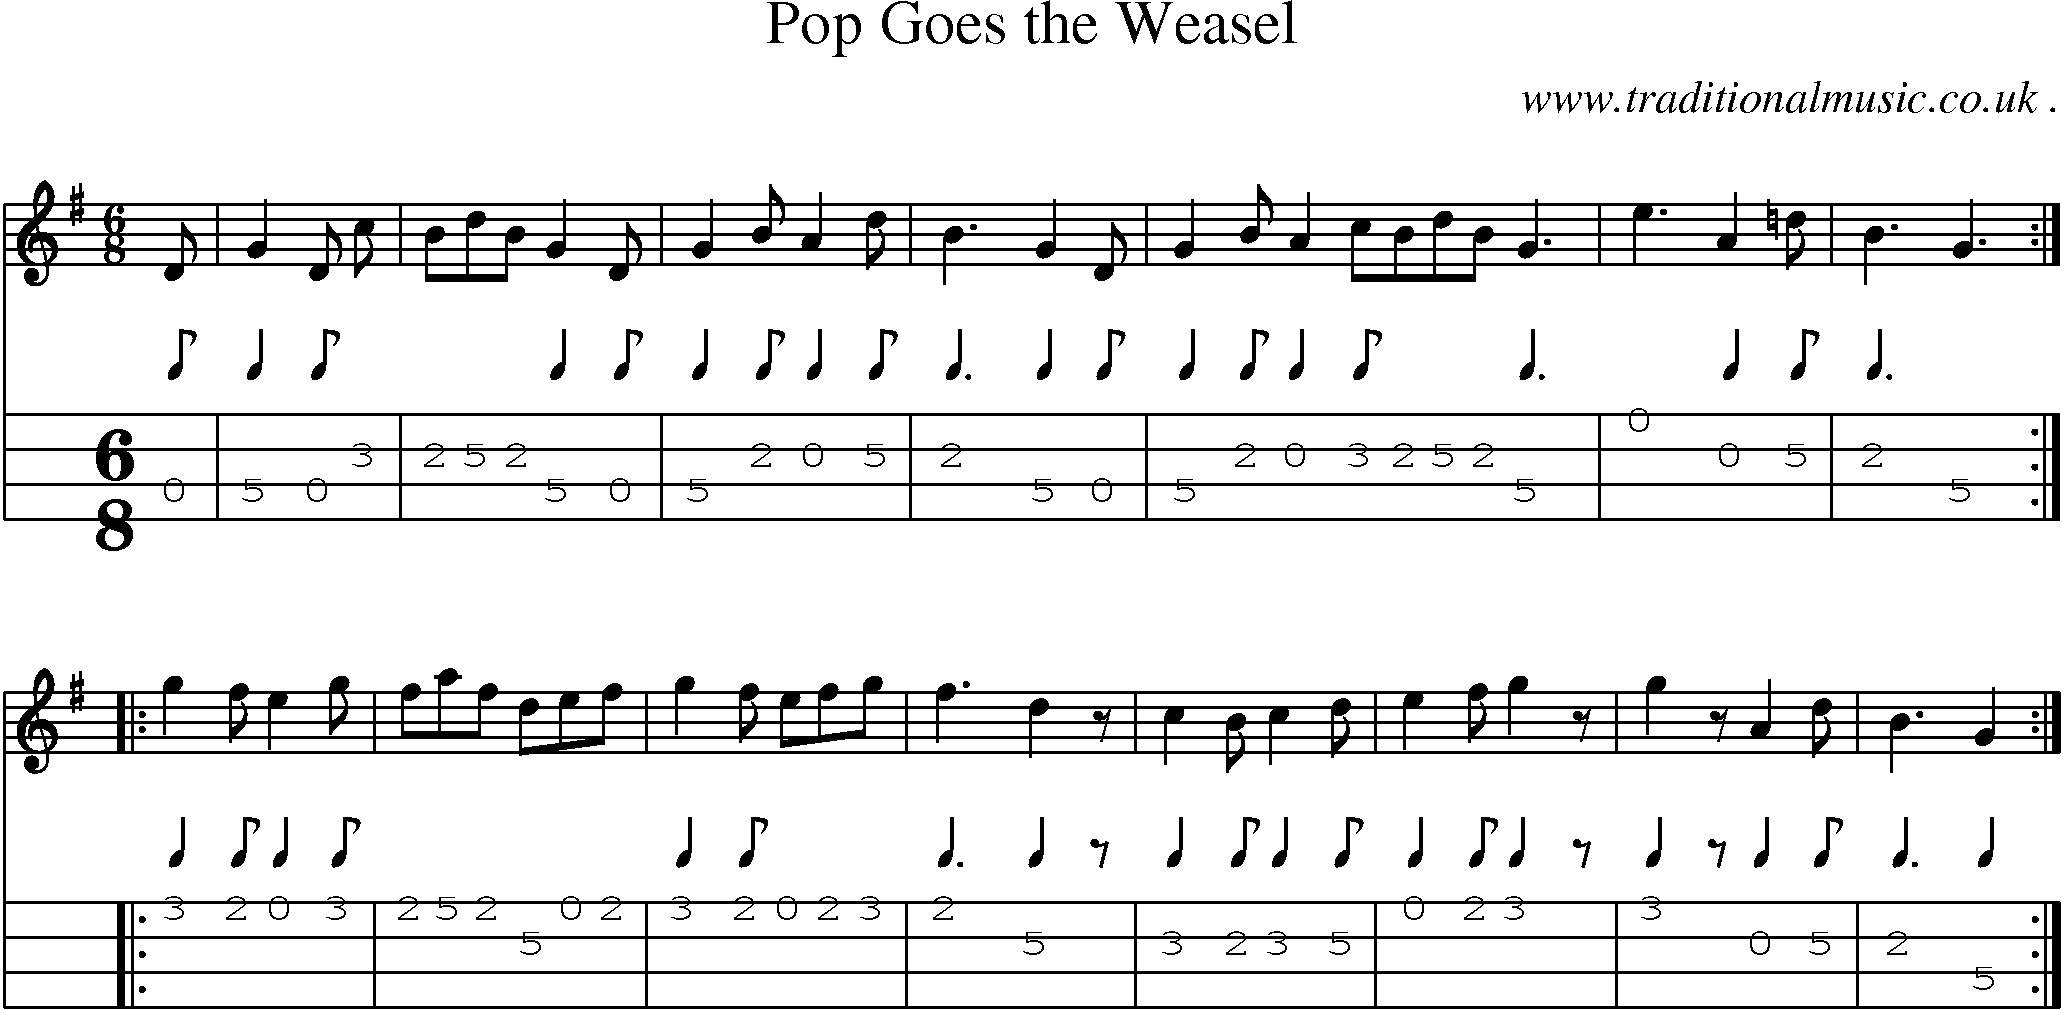 Folk and Traditional Music, Sheet-Music, Mandolin tab, midi, mp3 and PDF for: Pop Goes The Weasel